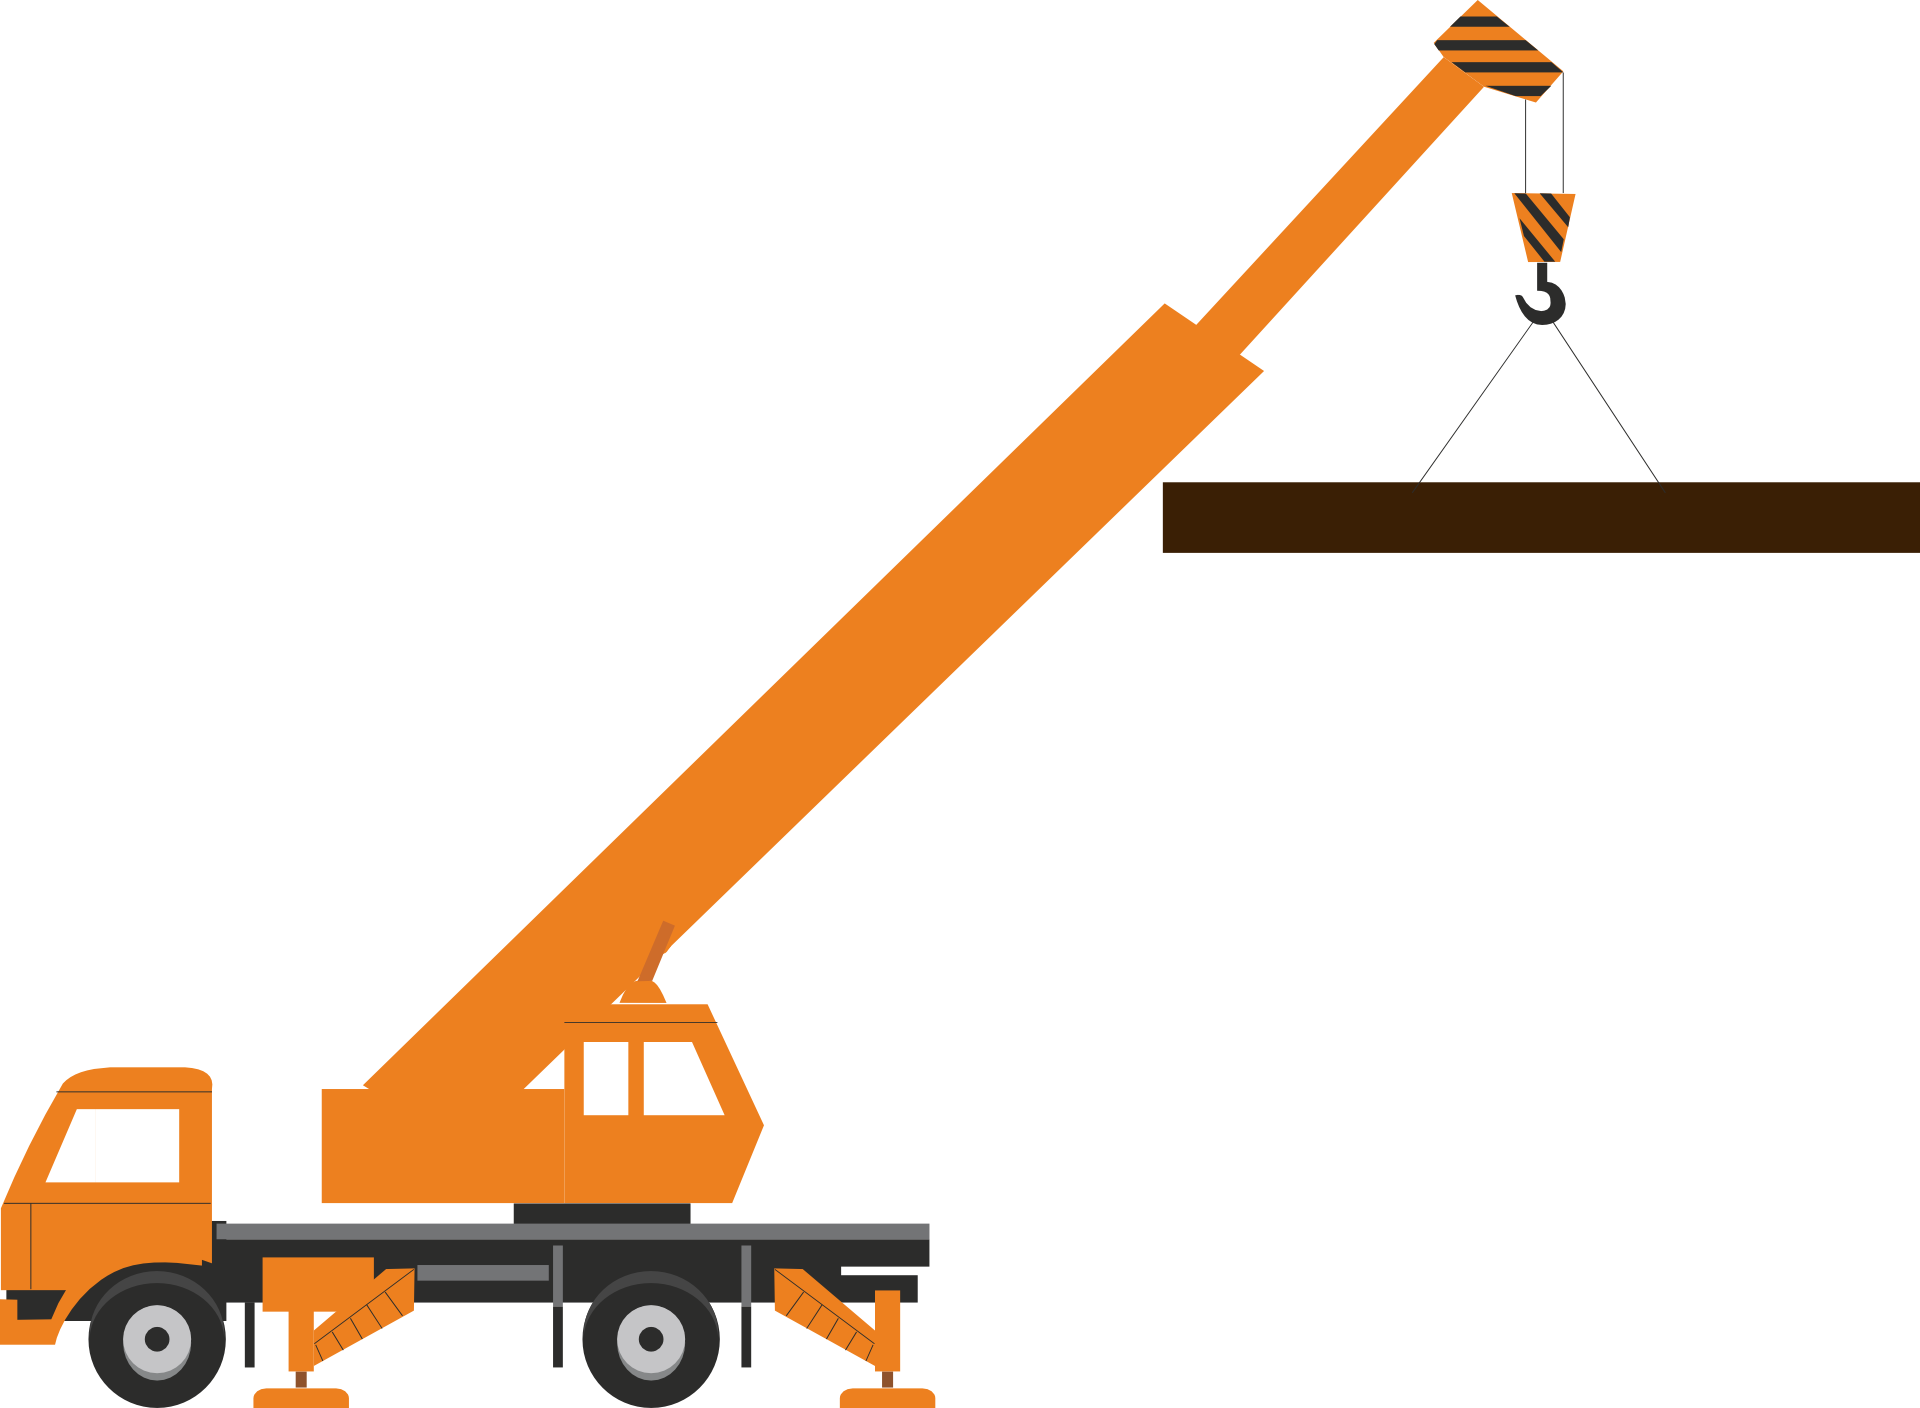 Construction site clipart banner freeuse stock Construction Crane Clipart at GetDrawings.com | Free for personal ... banner freeuse stock